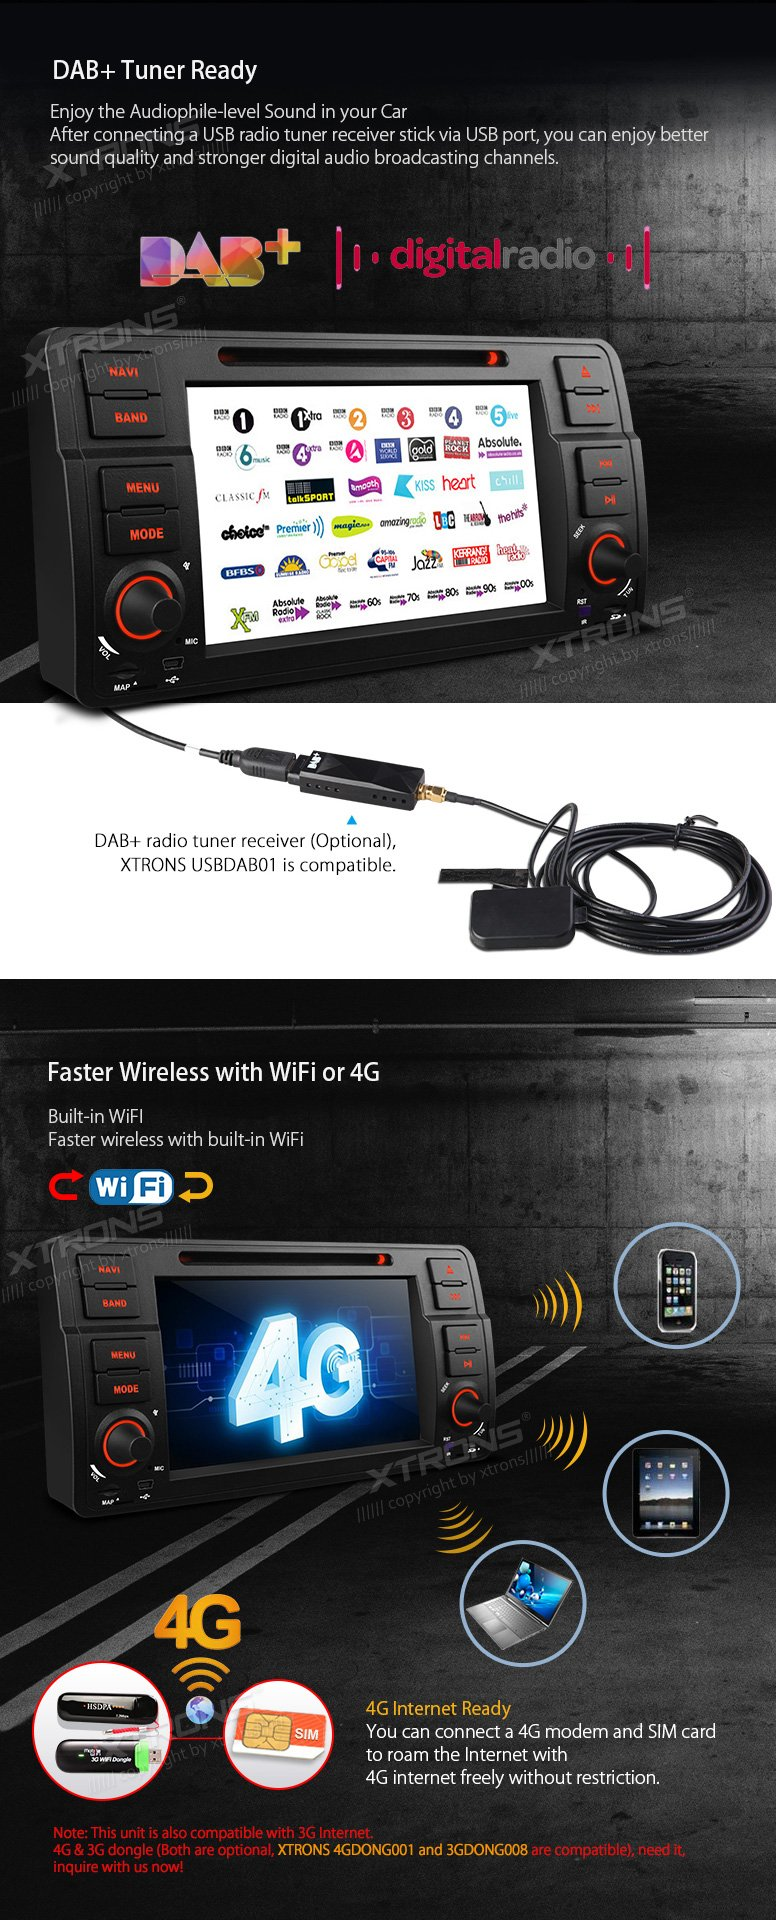 XTRONS Octa-Core 64Bit 2G RAM 32GB ROM 7 Inch HD Digital Capacitive Touch Screen Car Stereo Radio DVD Player GPS CANbus Screen Mirroring Function OBD2 Tire Pressure Monitoring for BMW E46 320 325